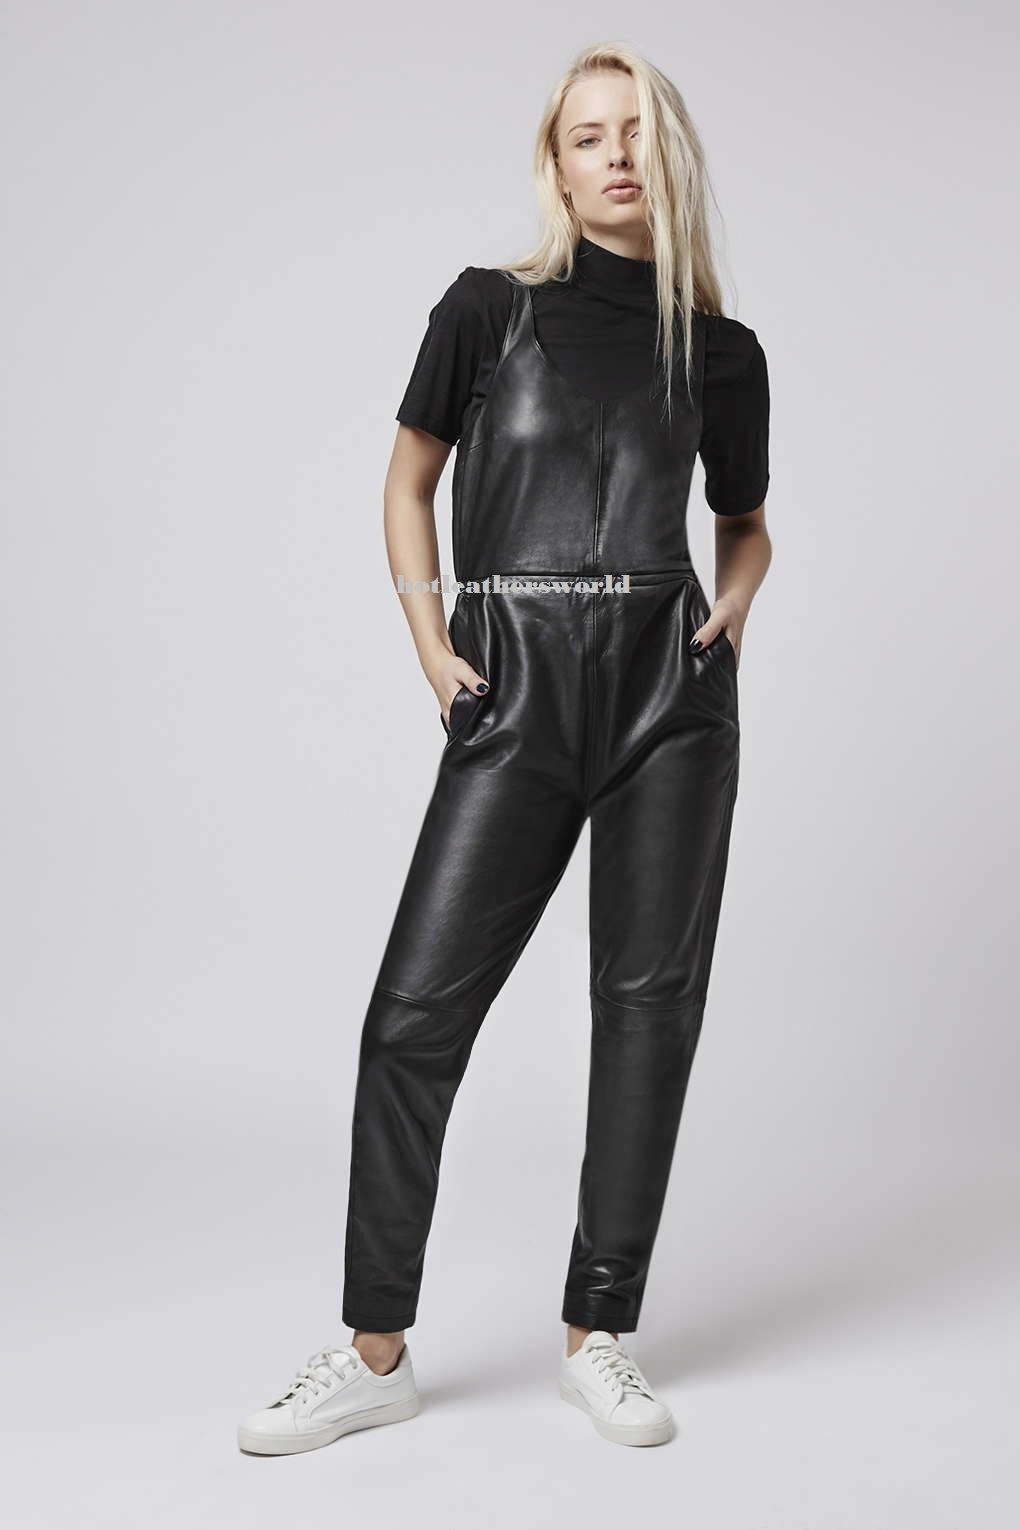 WOMEN LEATHER JUMPSUIT ROMPERS GENUINE LAMBSKIN REAL LEATHER JUMPSUIT-14